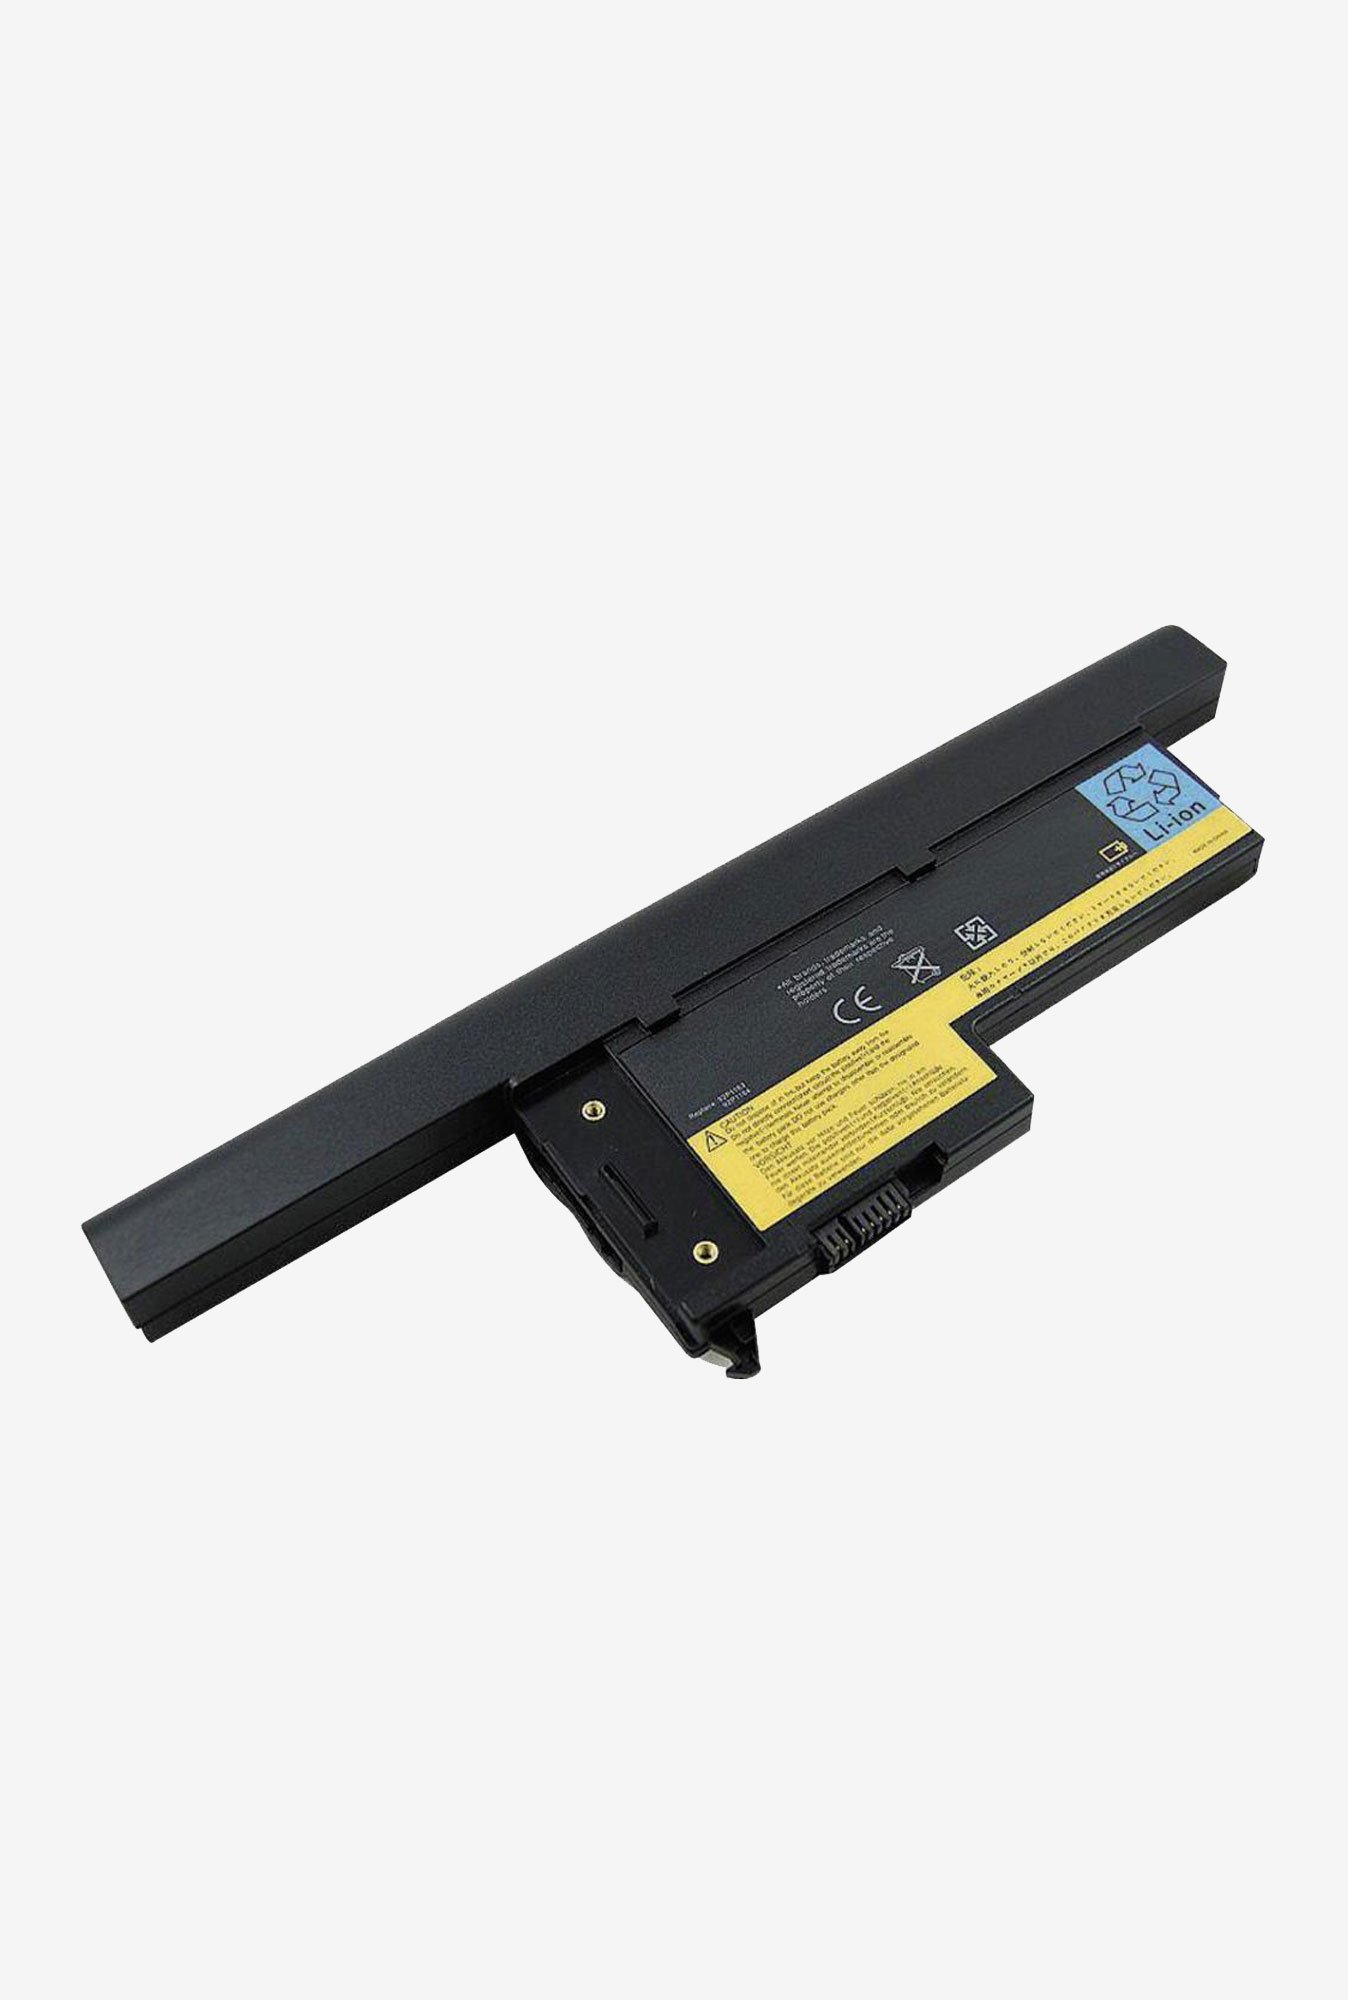 Lenovo 40Y6999 5200 mAh Laptop Battery Black